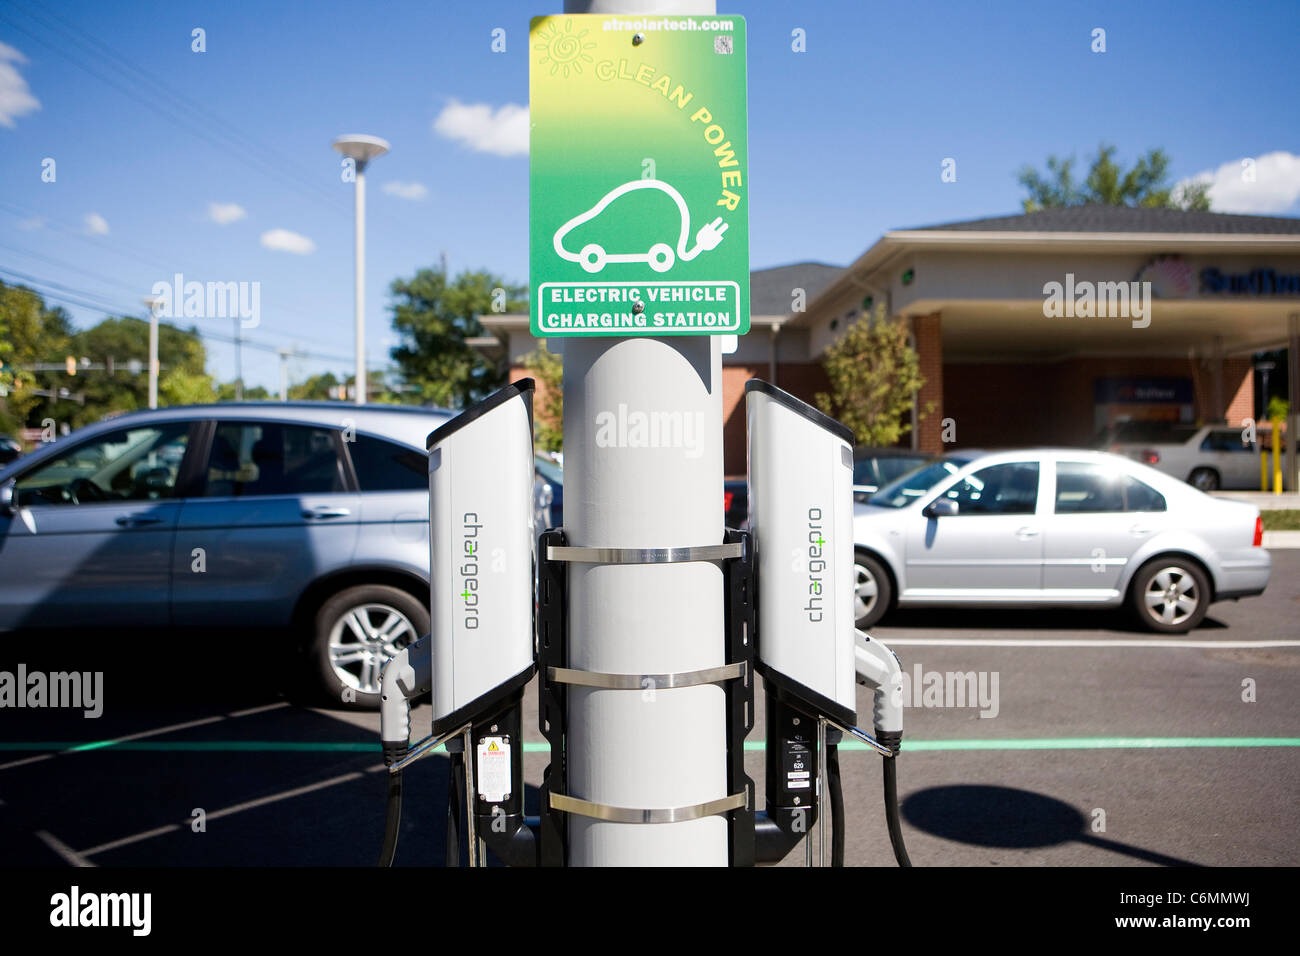 A solar powered electric car charger.  - Stock Image